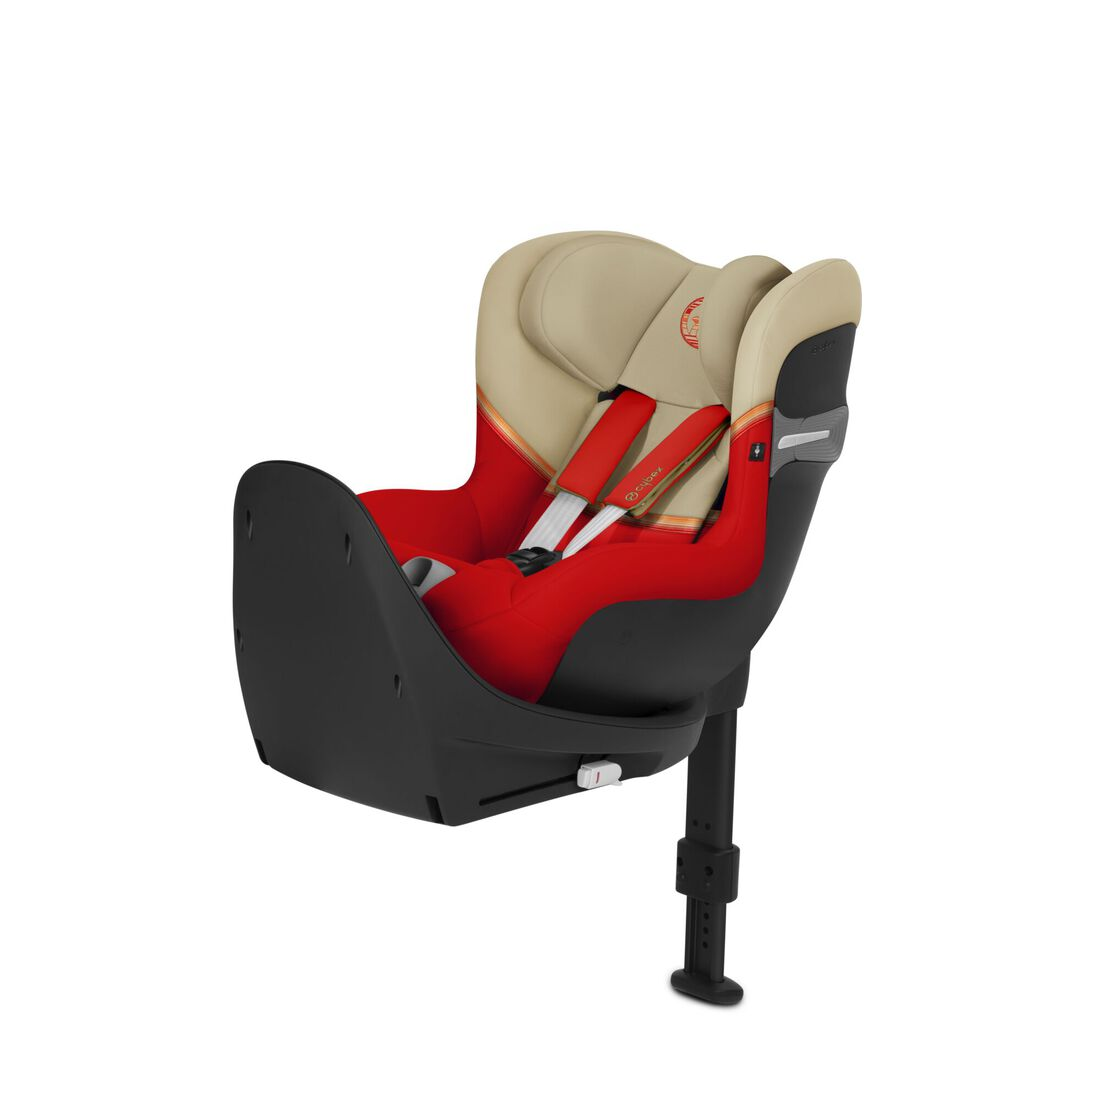 CYBEX Sirona SX2 i-Size - Autumn Gold in Autumn Gold large image number 1